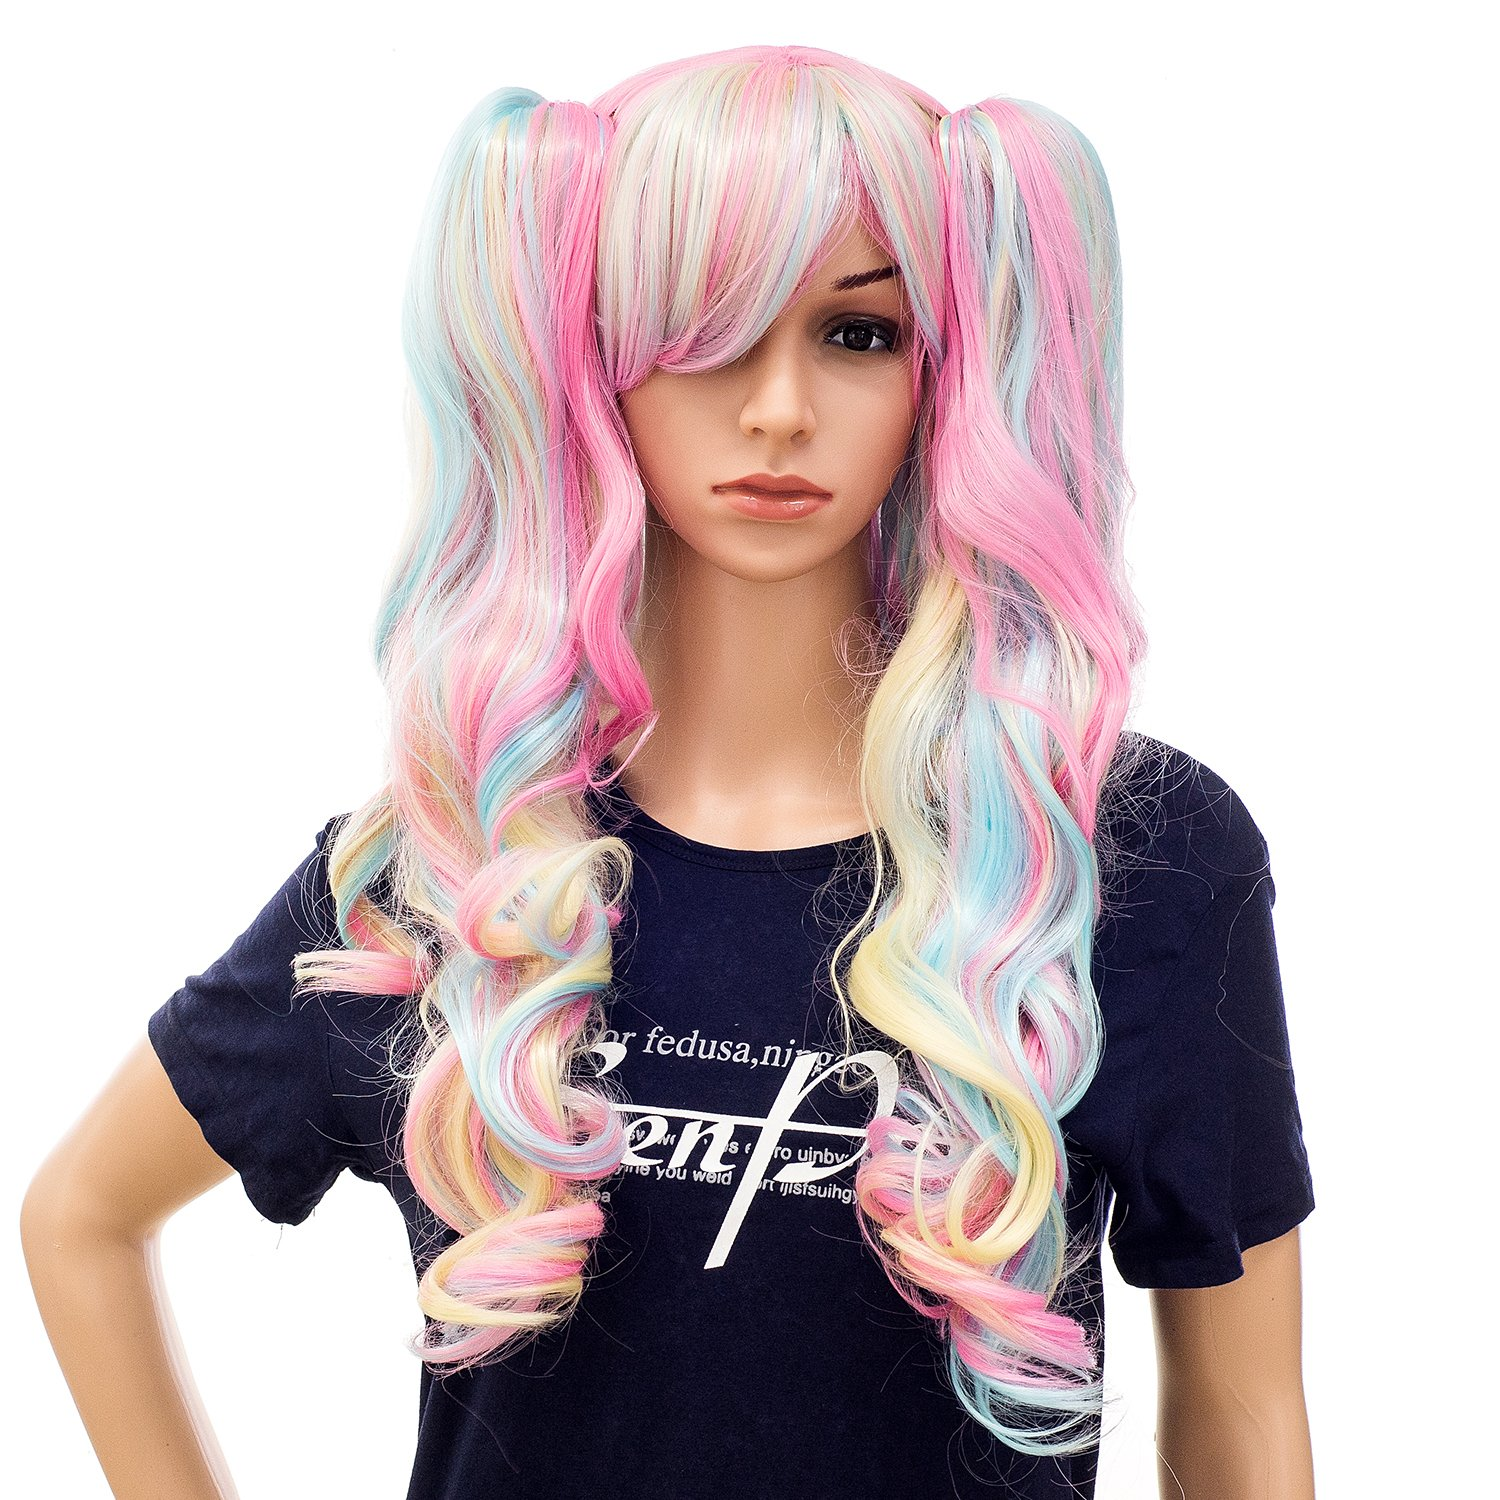 SWACC Long Curly Double Claw Clip on Ponytail Wig Synthetic Pastel Colorful Cosplay Daily Party Wig for Women and Kids with Wig Cap (Multi-Color Pink/Blue/Blonde-3) by SWACC